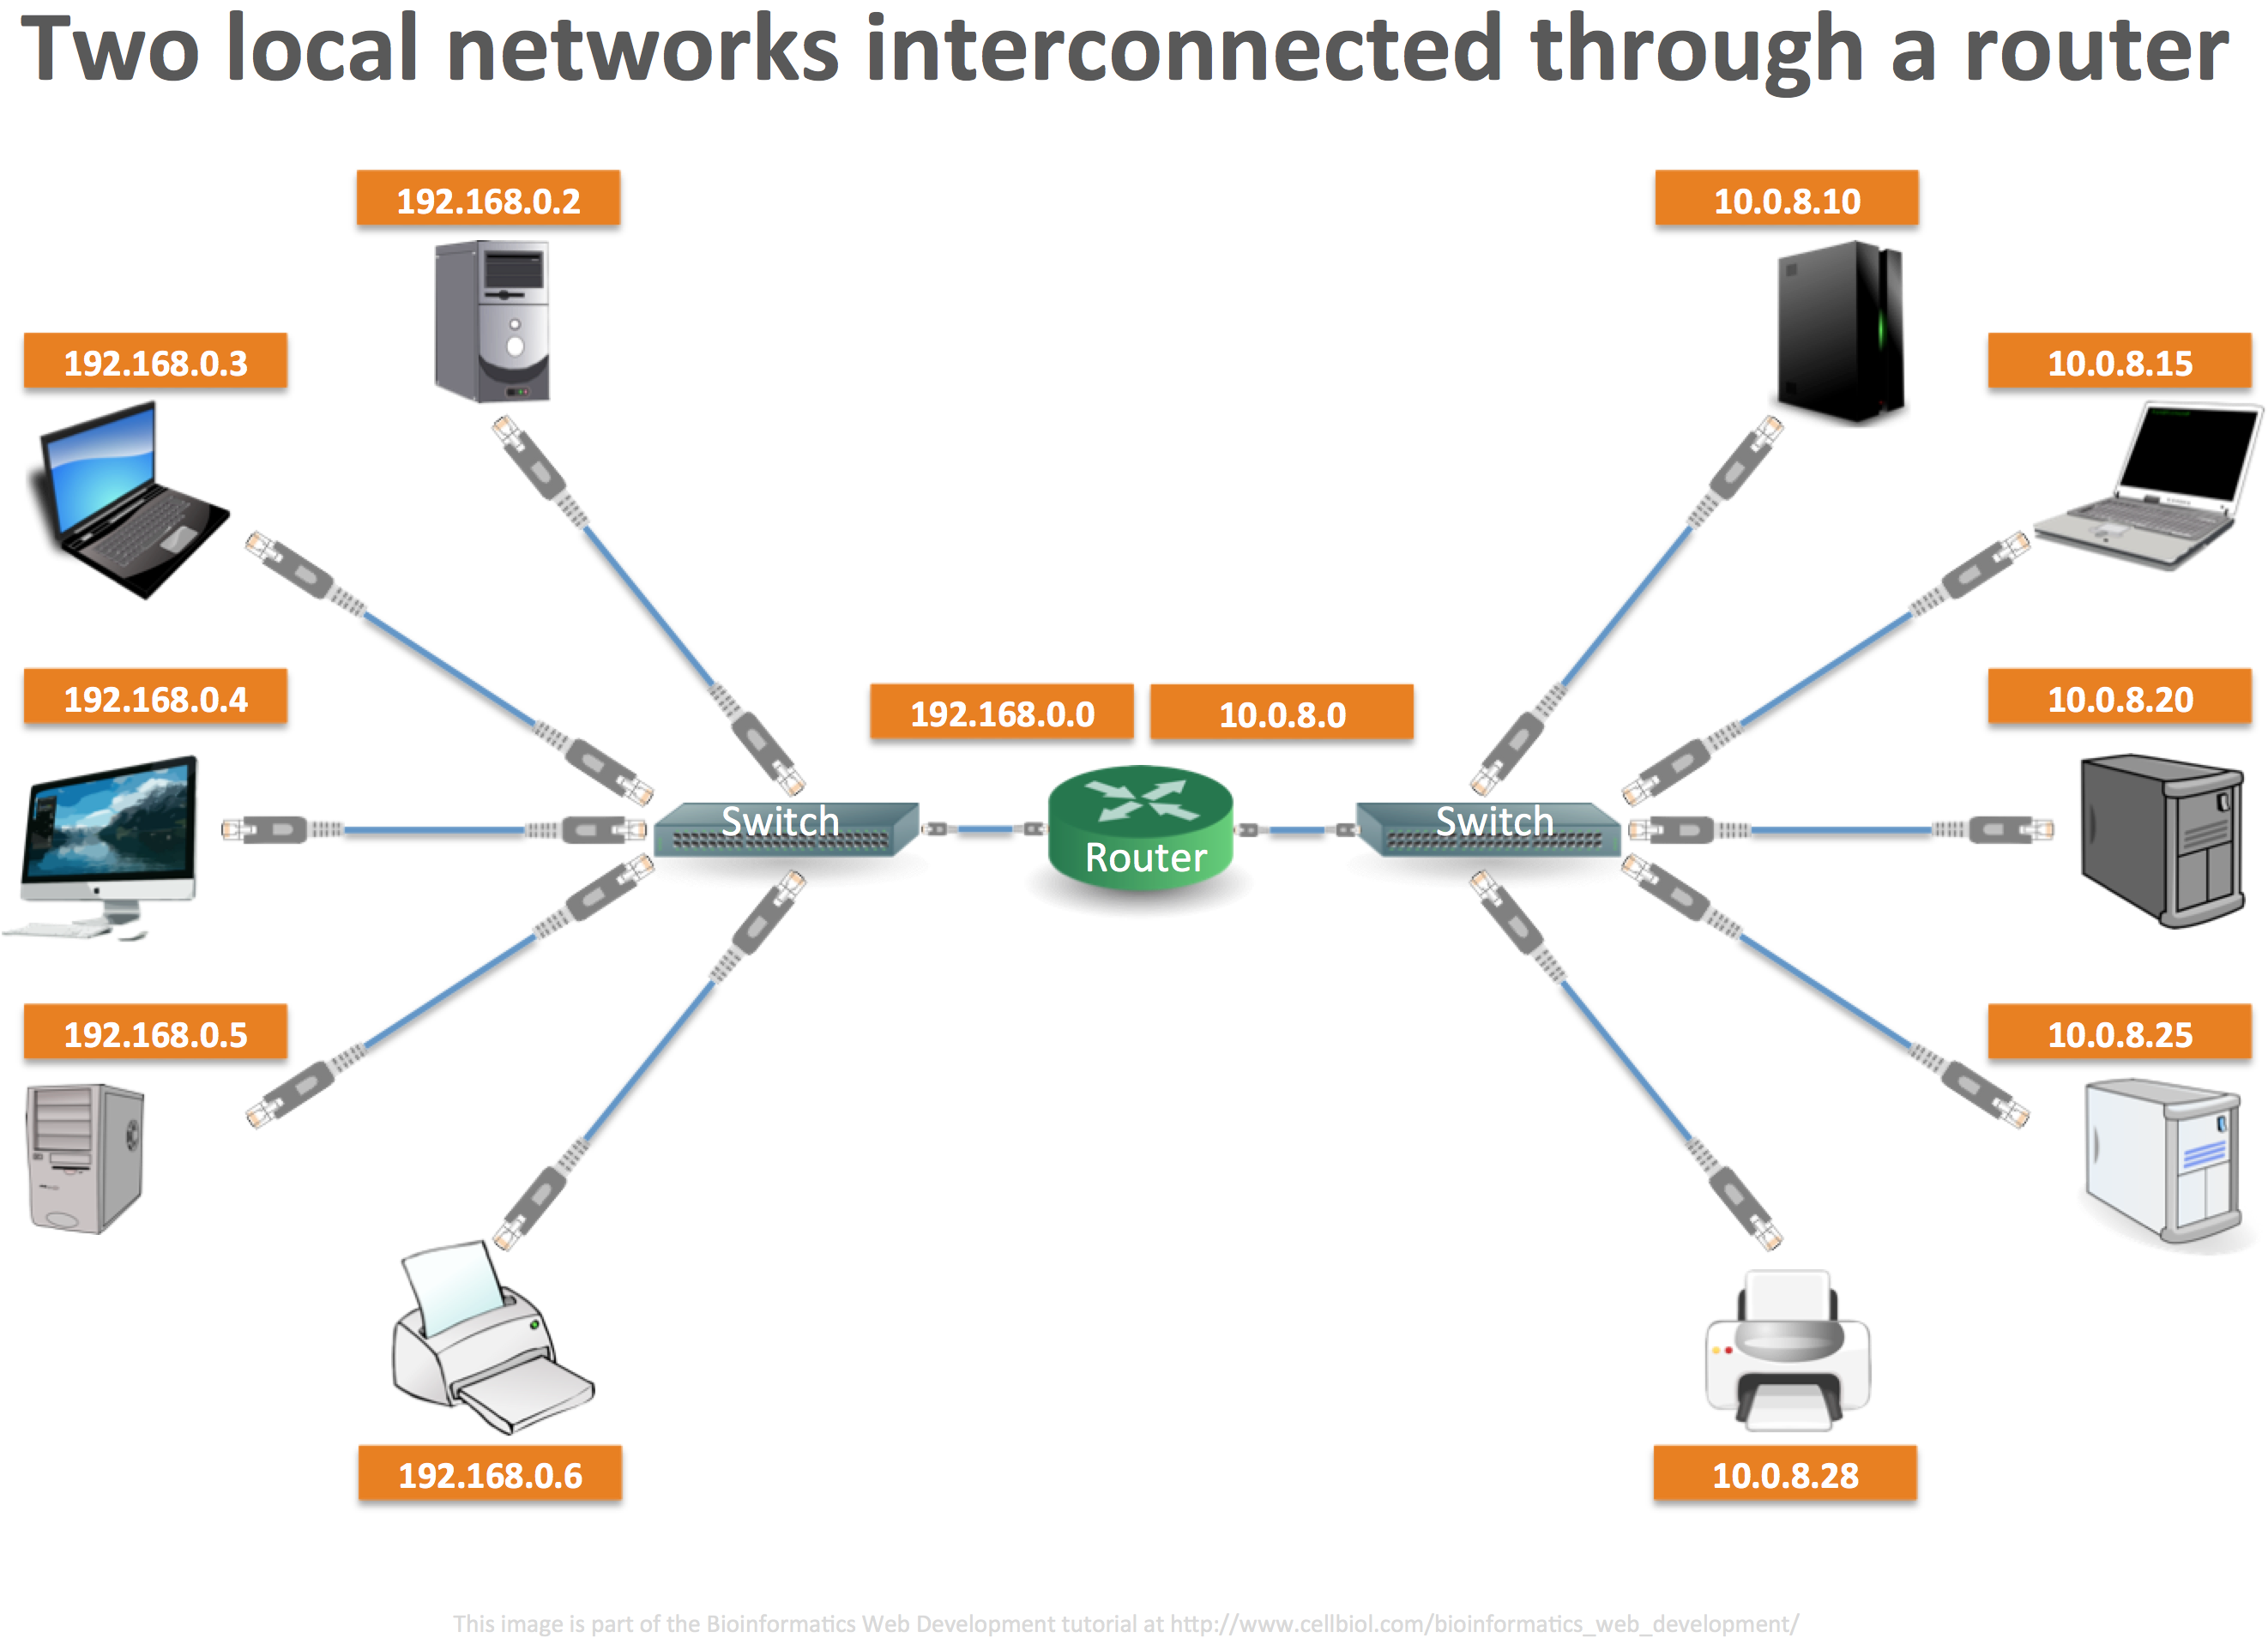 Two local networks interconnected through a router. The first has IP addresses in the range 192.168.0.0-255 while the second in the range 10.0.8.0-255. The router allows the exchange of TCP/IP packets between the two networks.